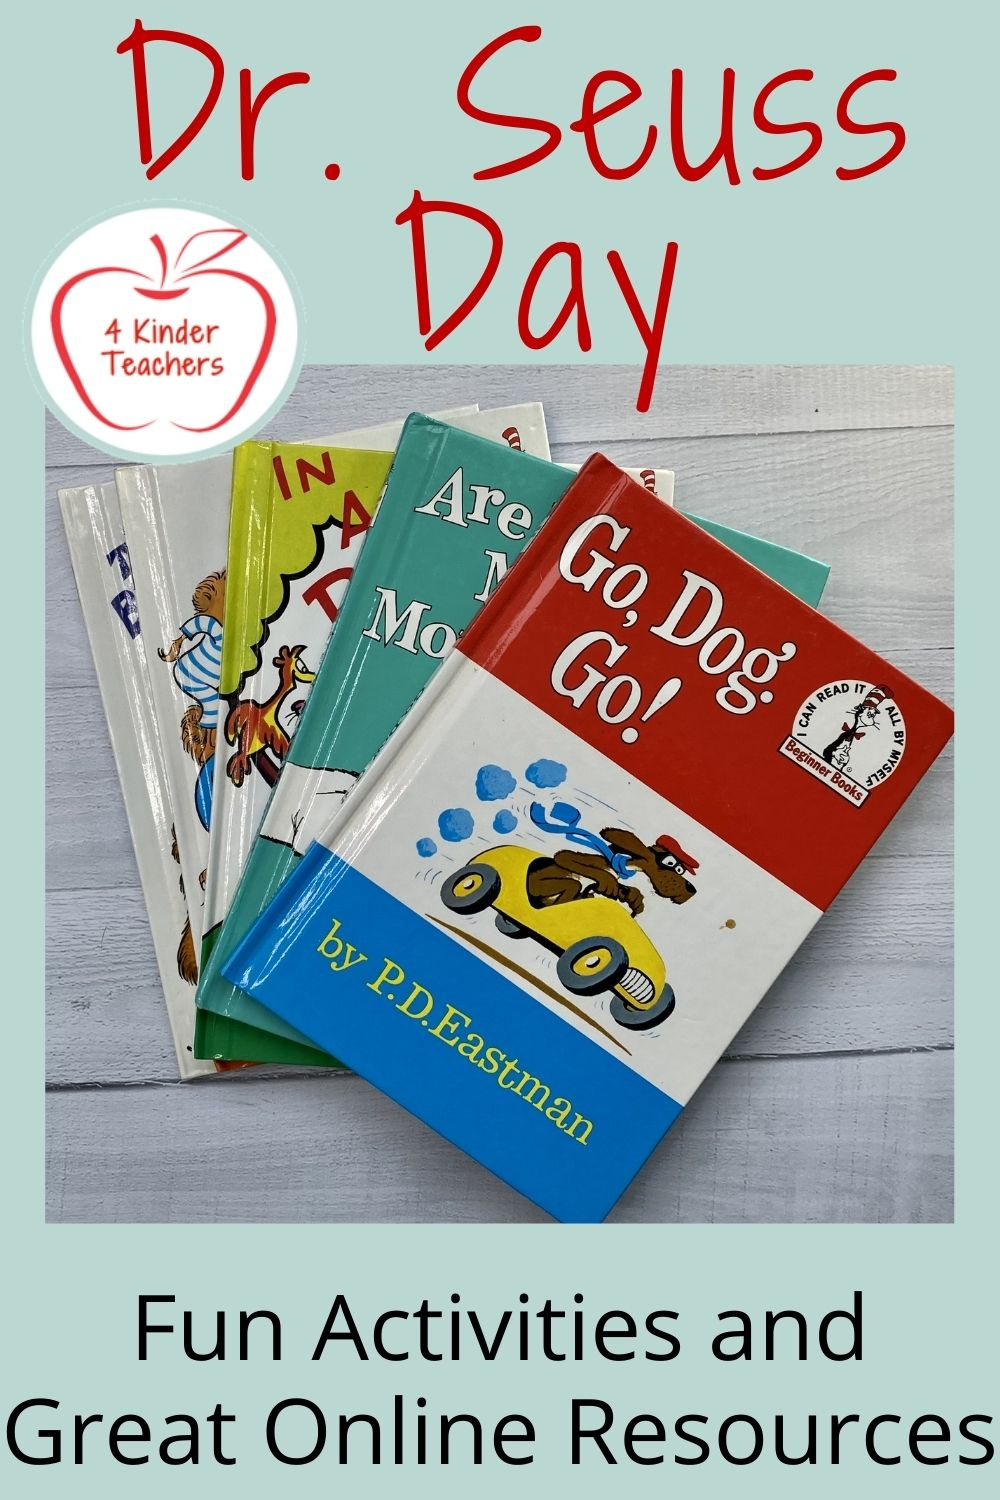 Celebrate Dr. Seuss Day with Online Resources and Fun Activities